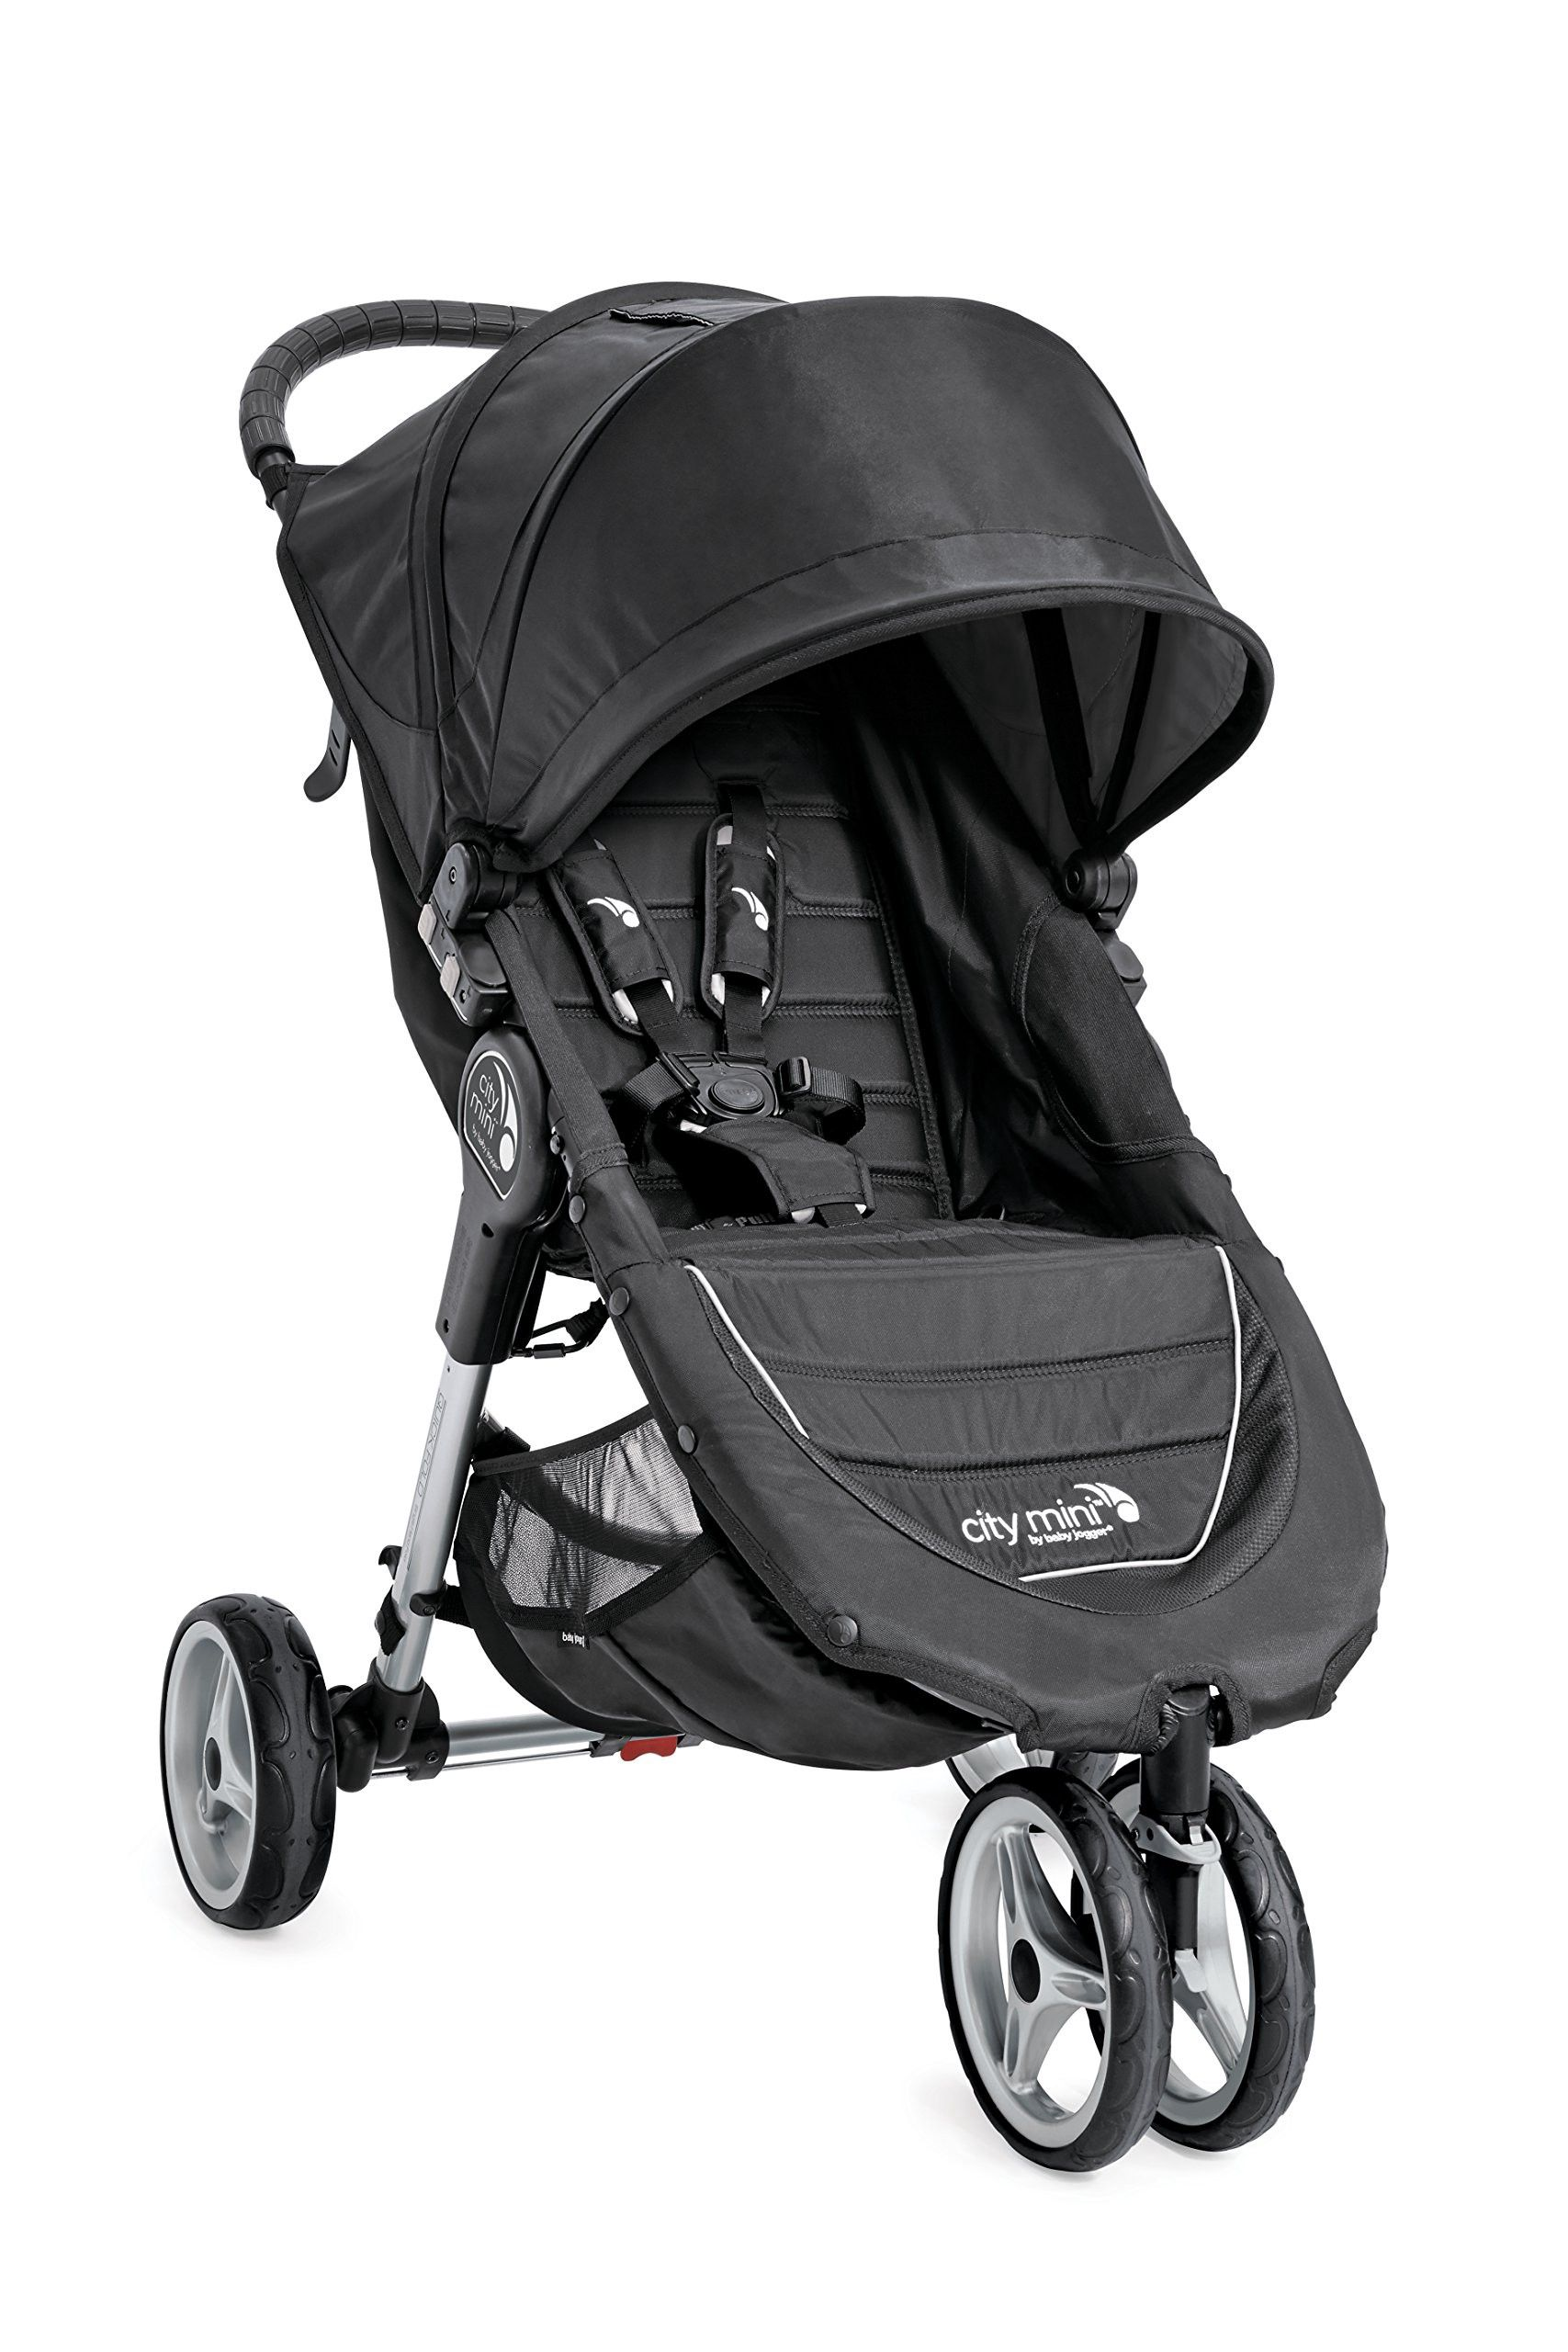 Baby Jogger City Mini Stroller Review in 2019 Bicycles